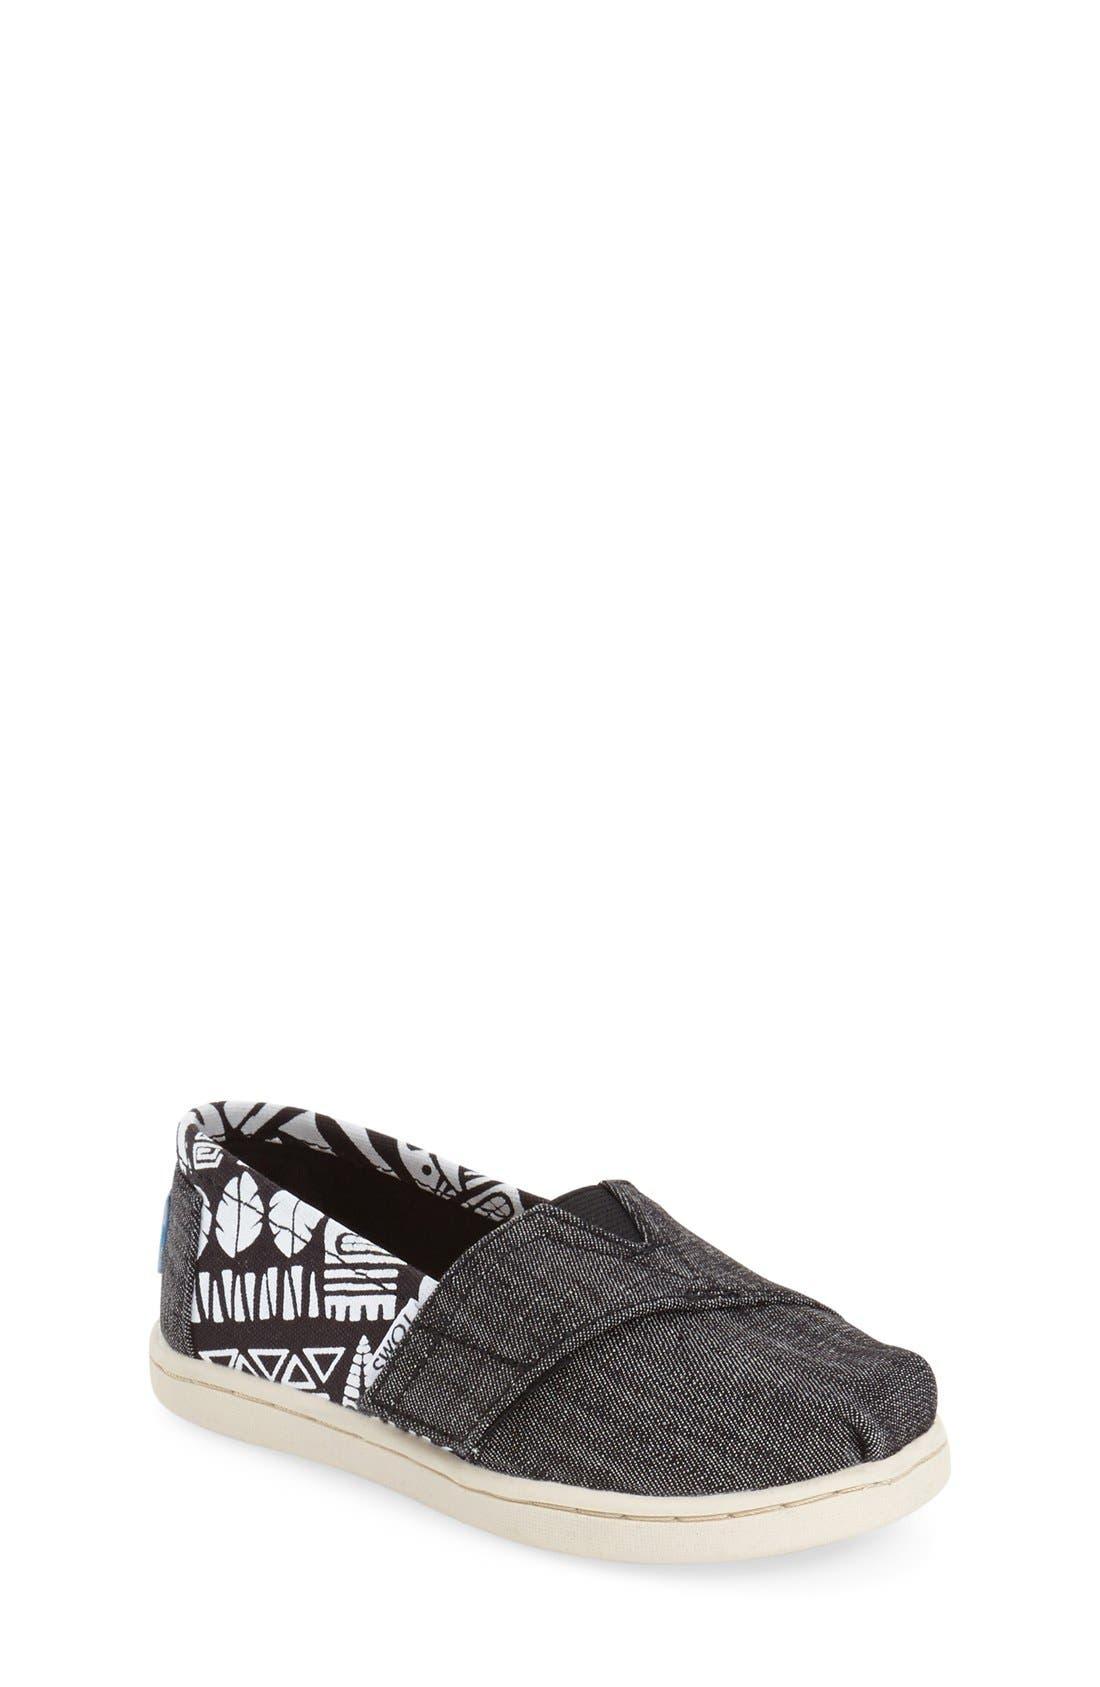 'Tiki' Canvas Slip-On,                             Main thumbnail 1, color,                             Black